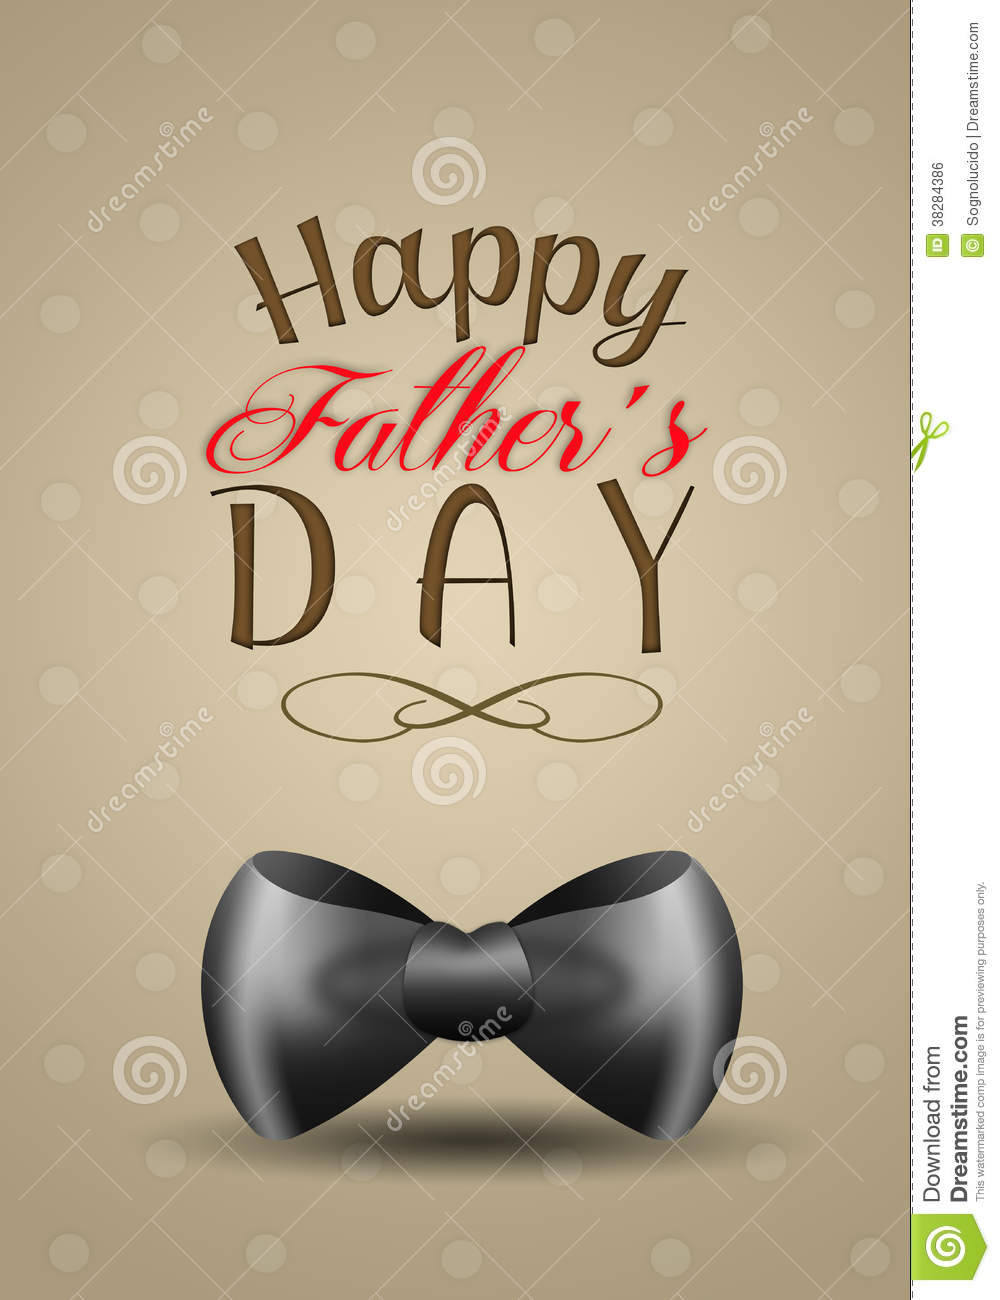 Black Bow Tie For Fathers Day Royalty Free Stock Image